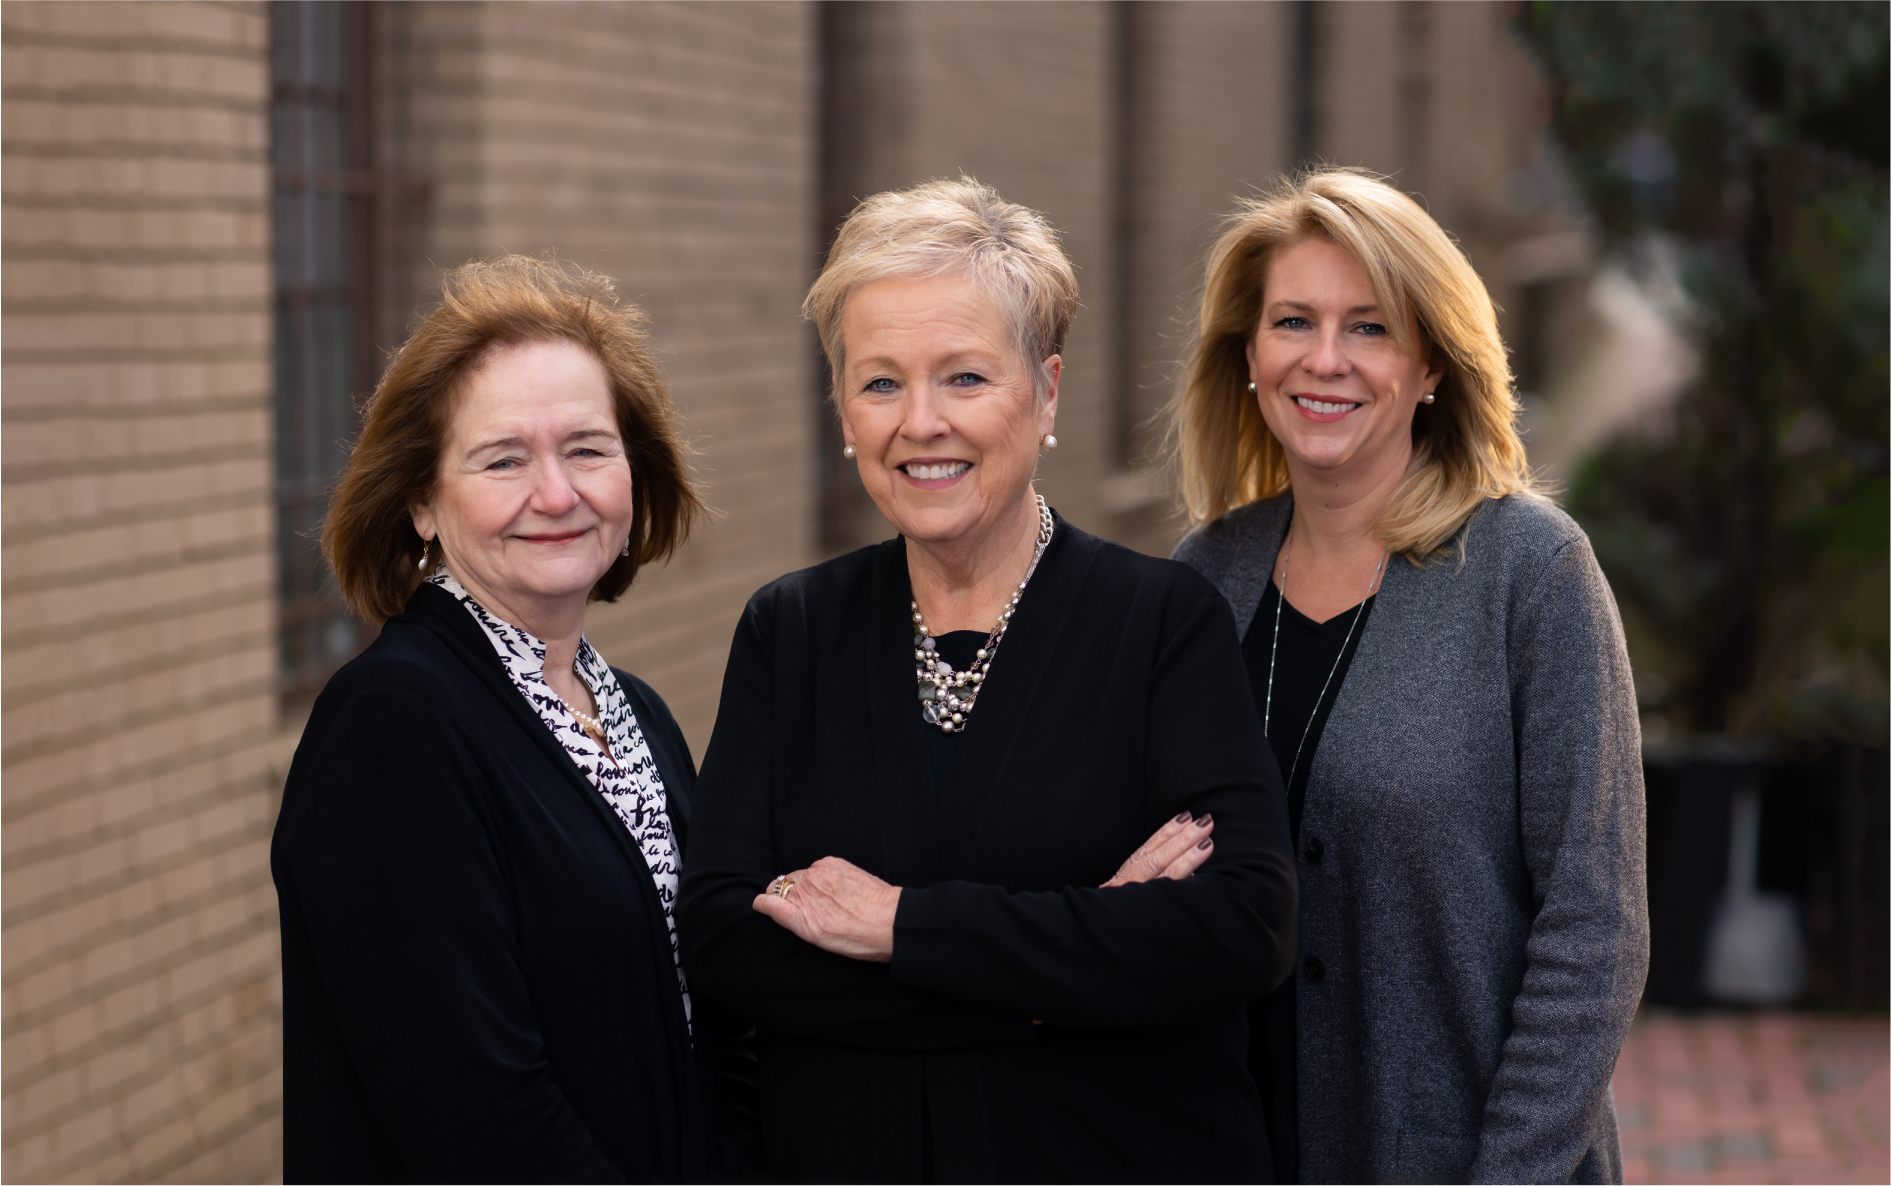 The Girls of Real Estate are Alrington, VA, Gainesville, VA and Northern VA real Estate Experts: Candace Moe, Chelle Gassan and Naomi